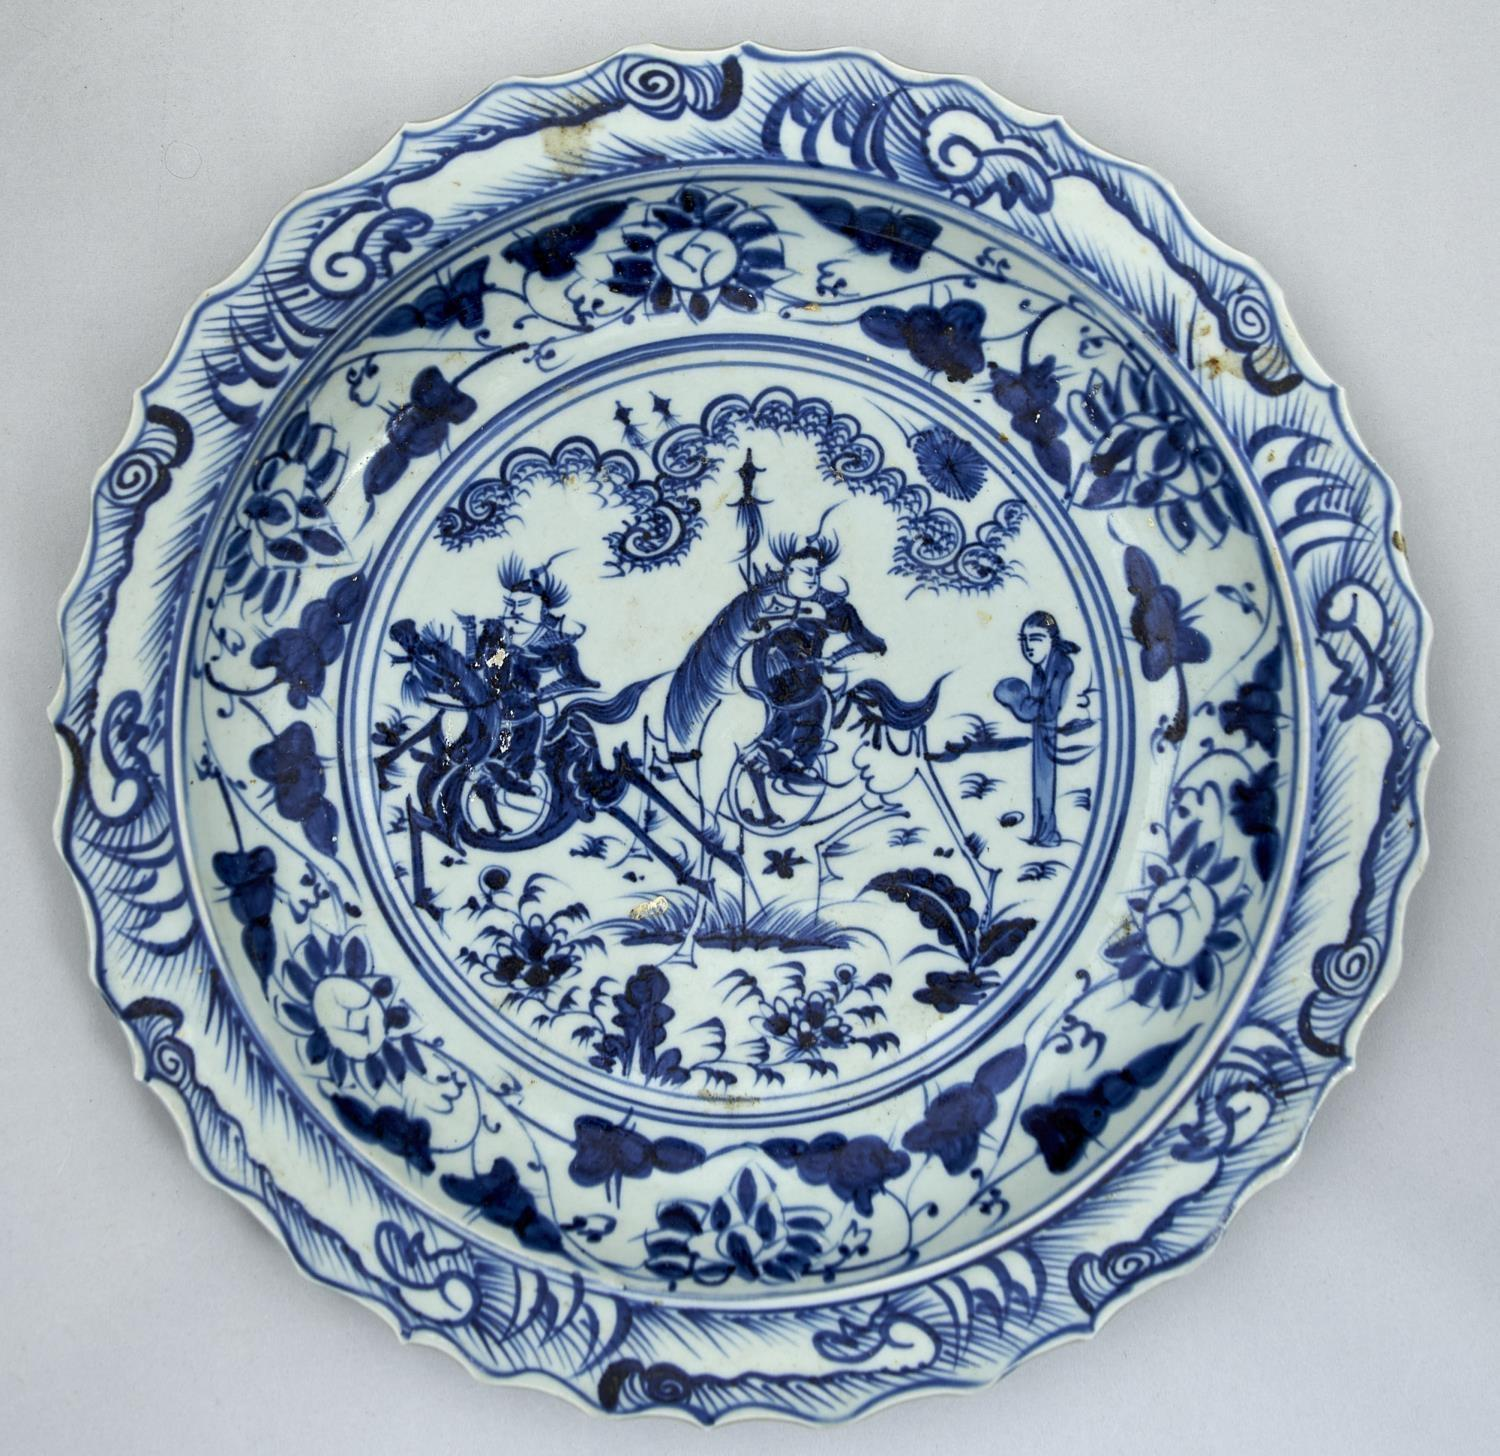 A CHINESE BLUE AND WHITE DISH, 20TH C, PAINTED IN MING STYLE WITH TWO MOUNTED FIGURES AND AN